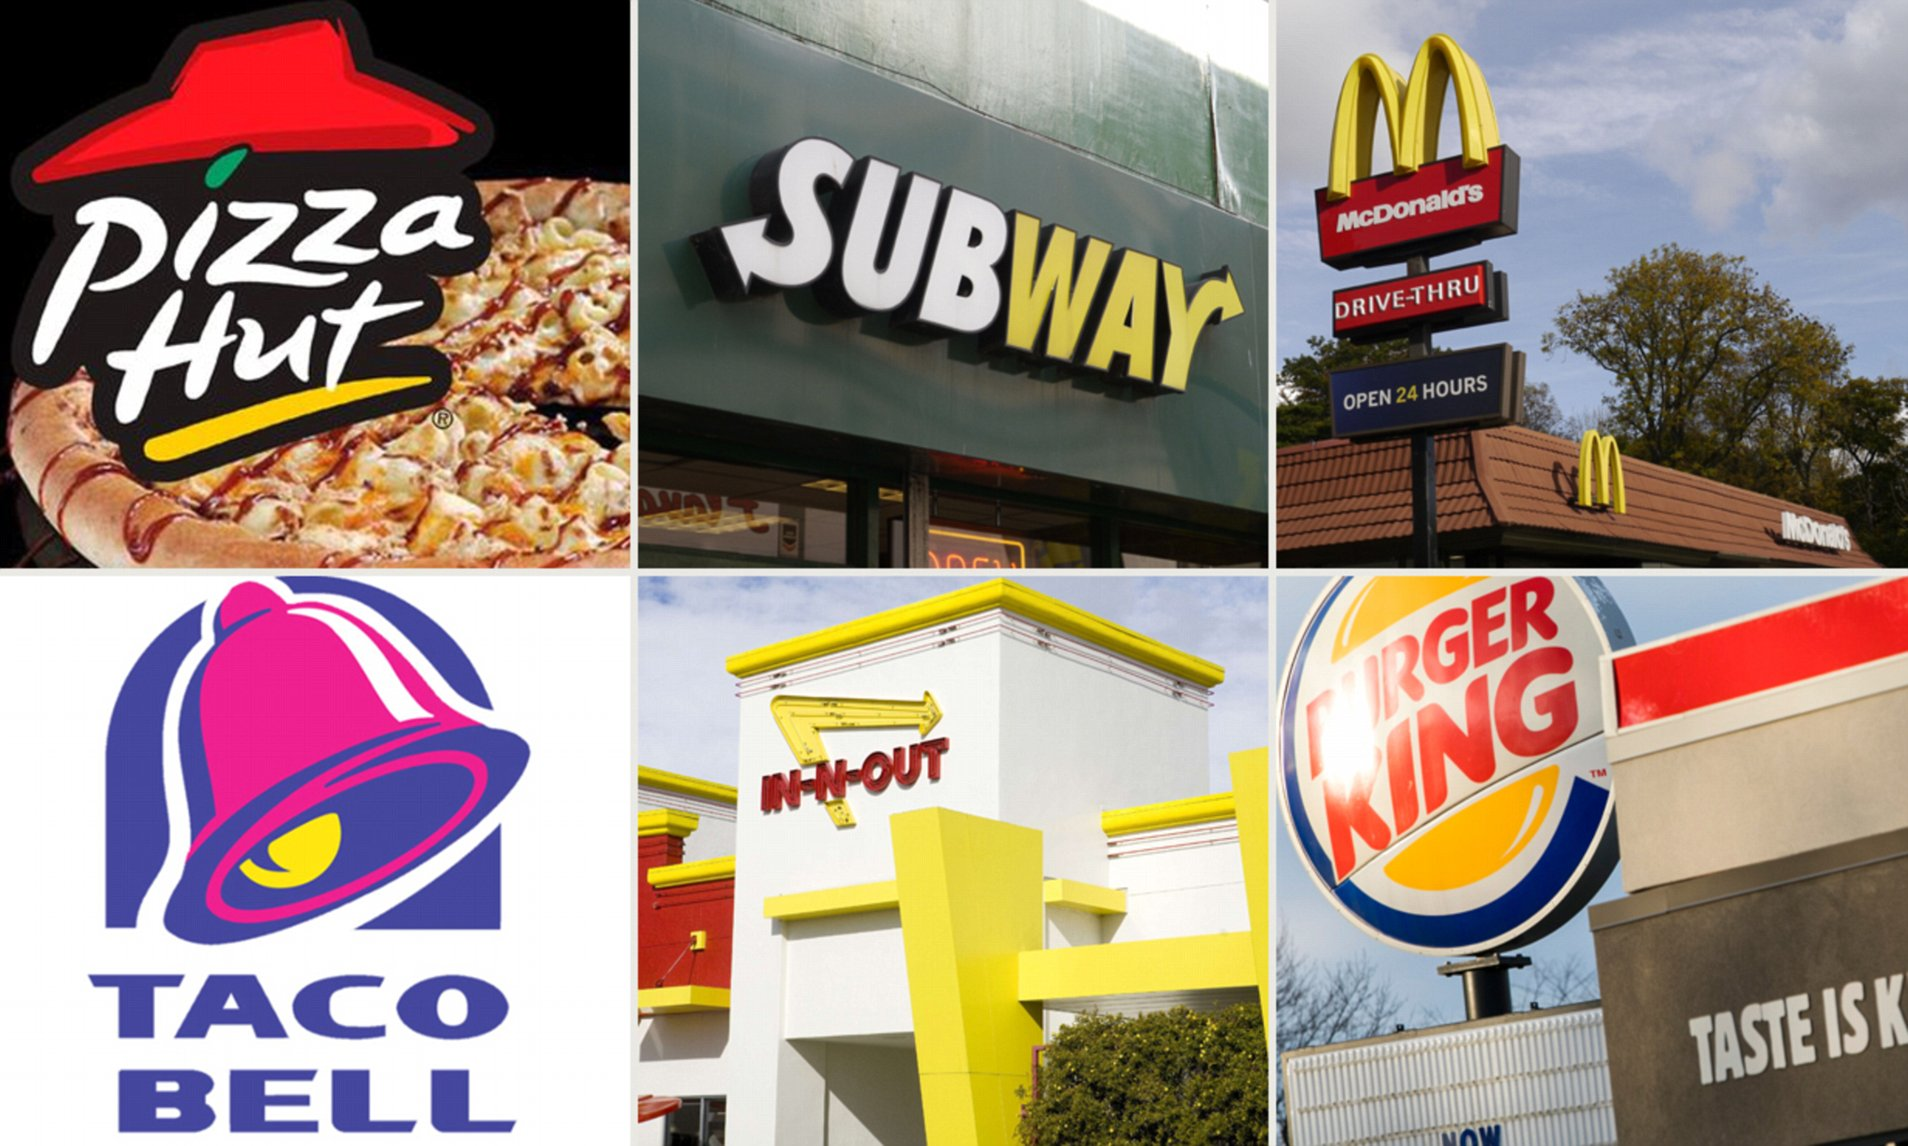 My Top 5 Favorite Fast Food Restaurants In The World